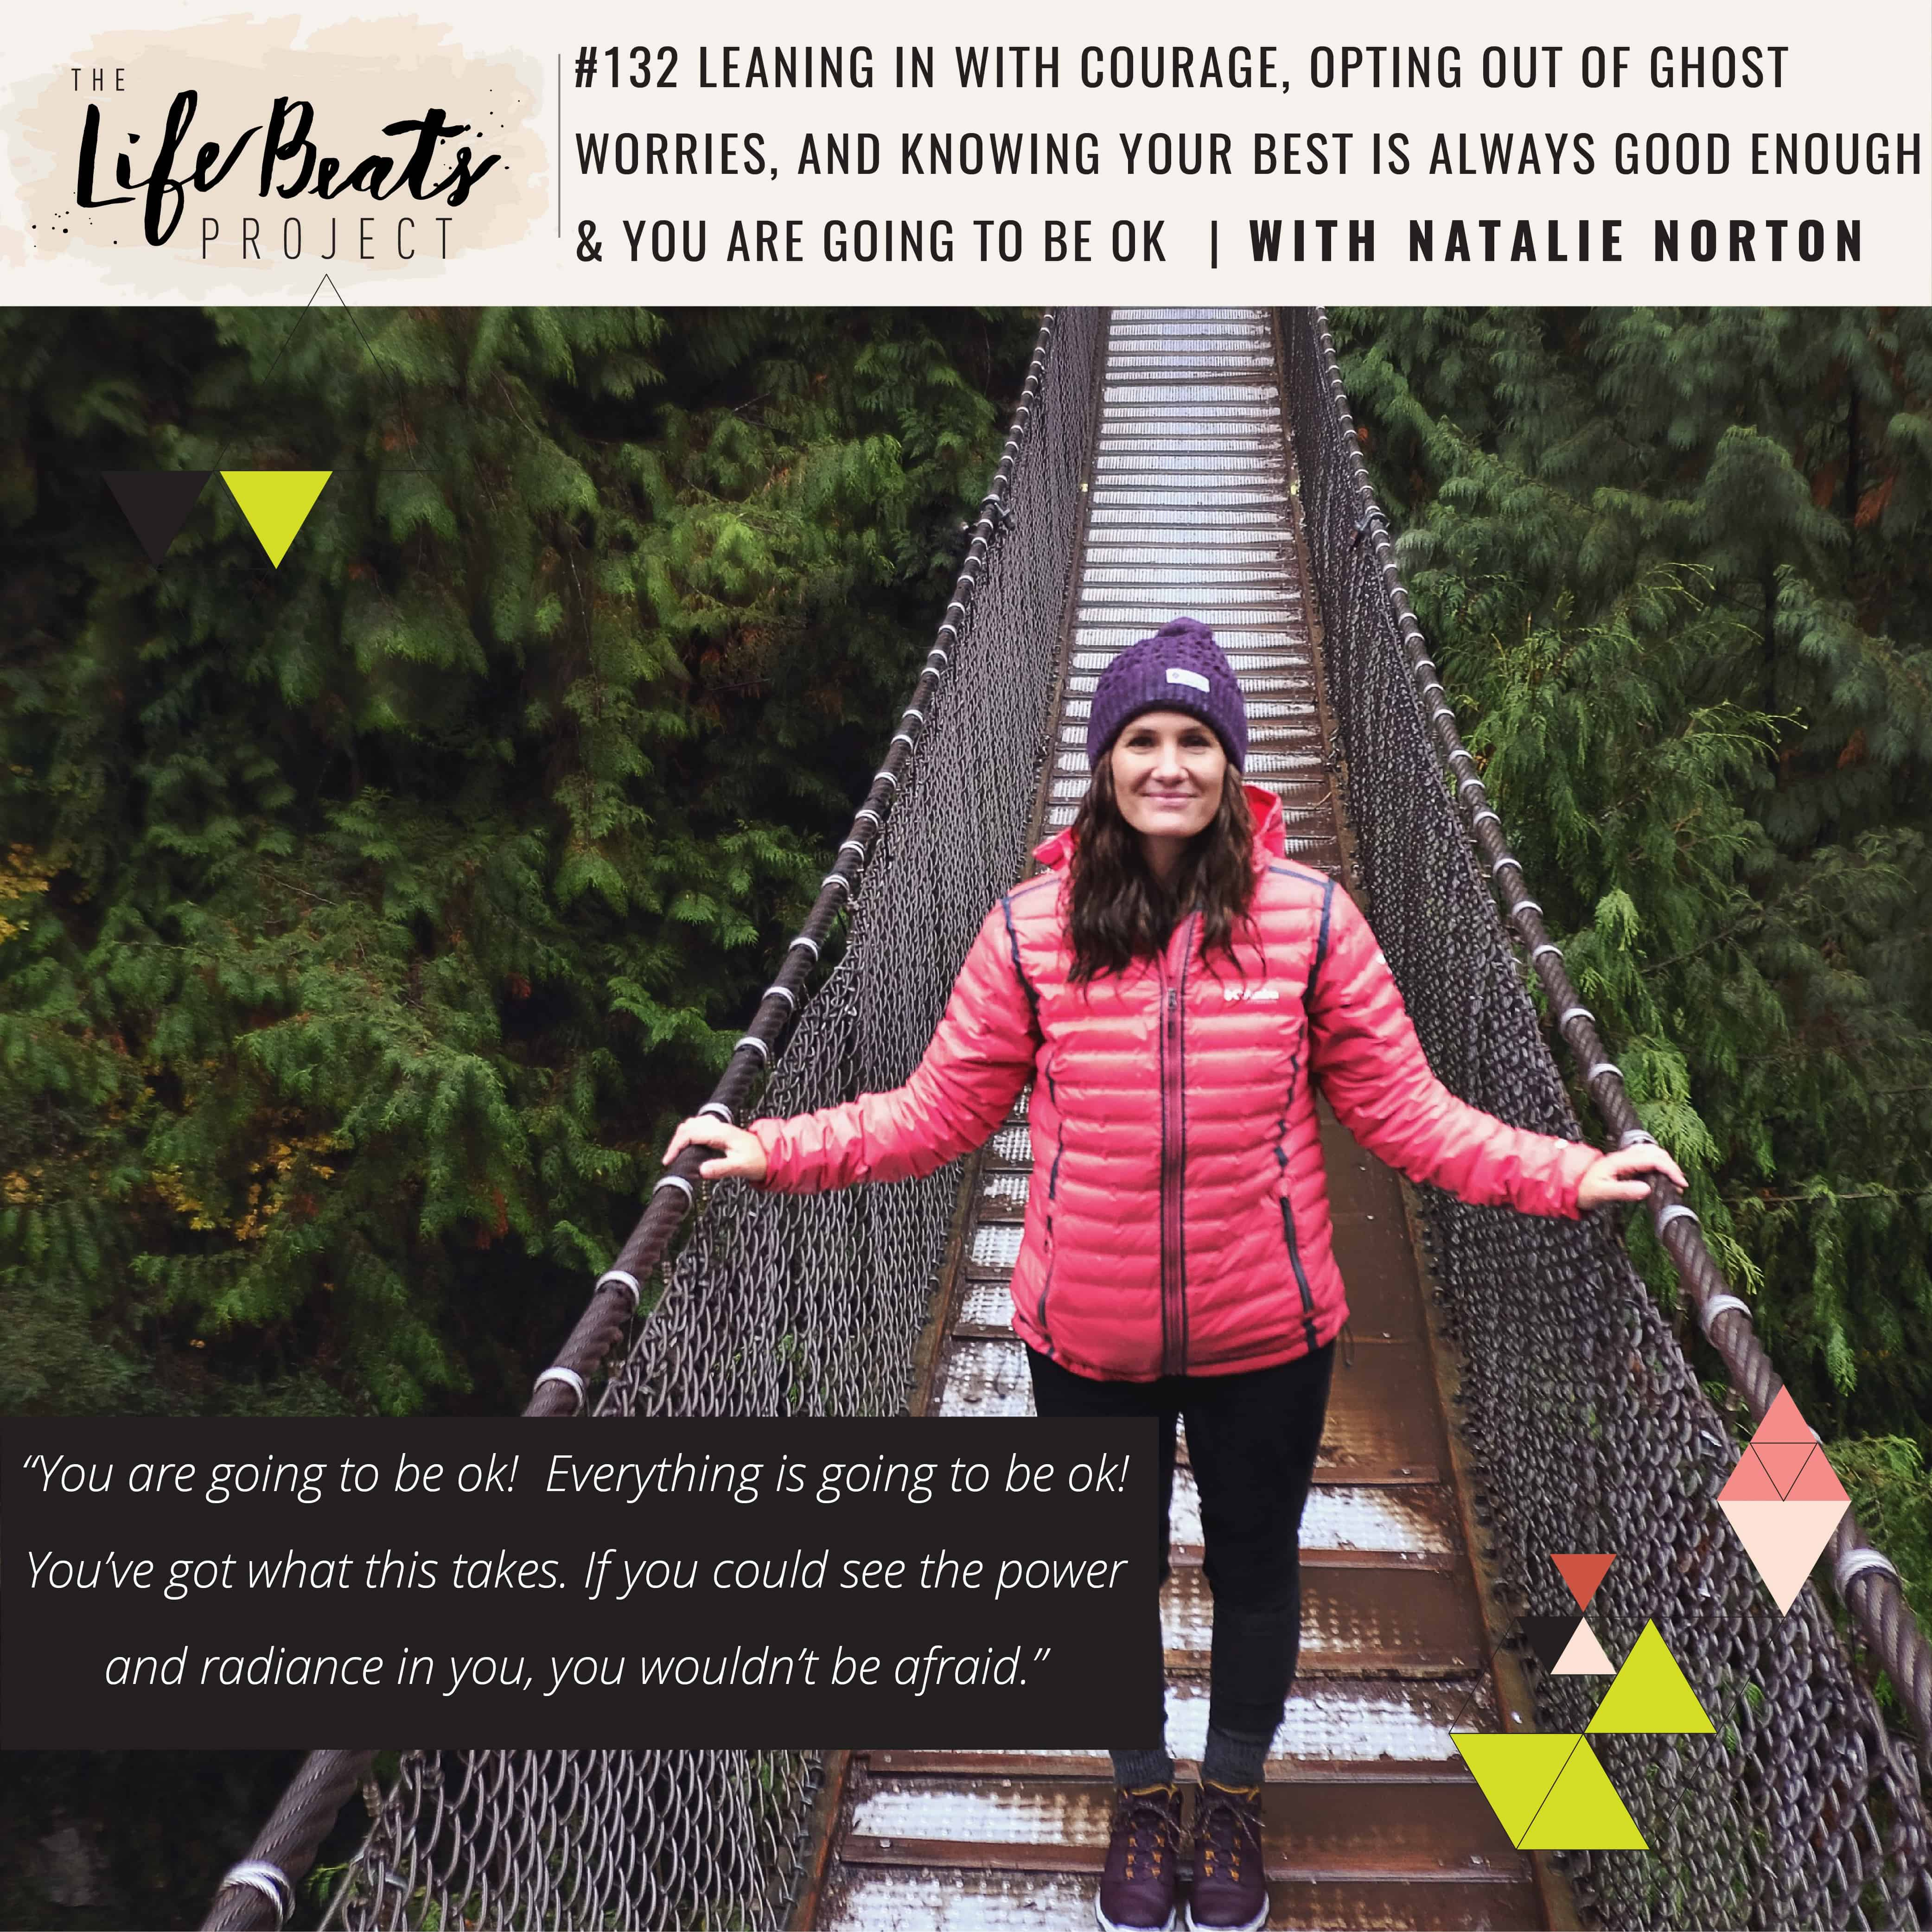 Natalie Norton Show Up podcast LifeBeats Project stroke motherhood good enough single mom death of child loss grief worry